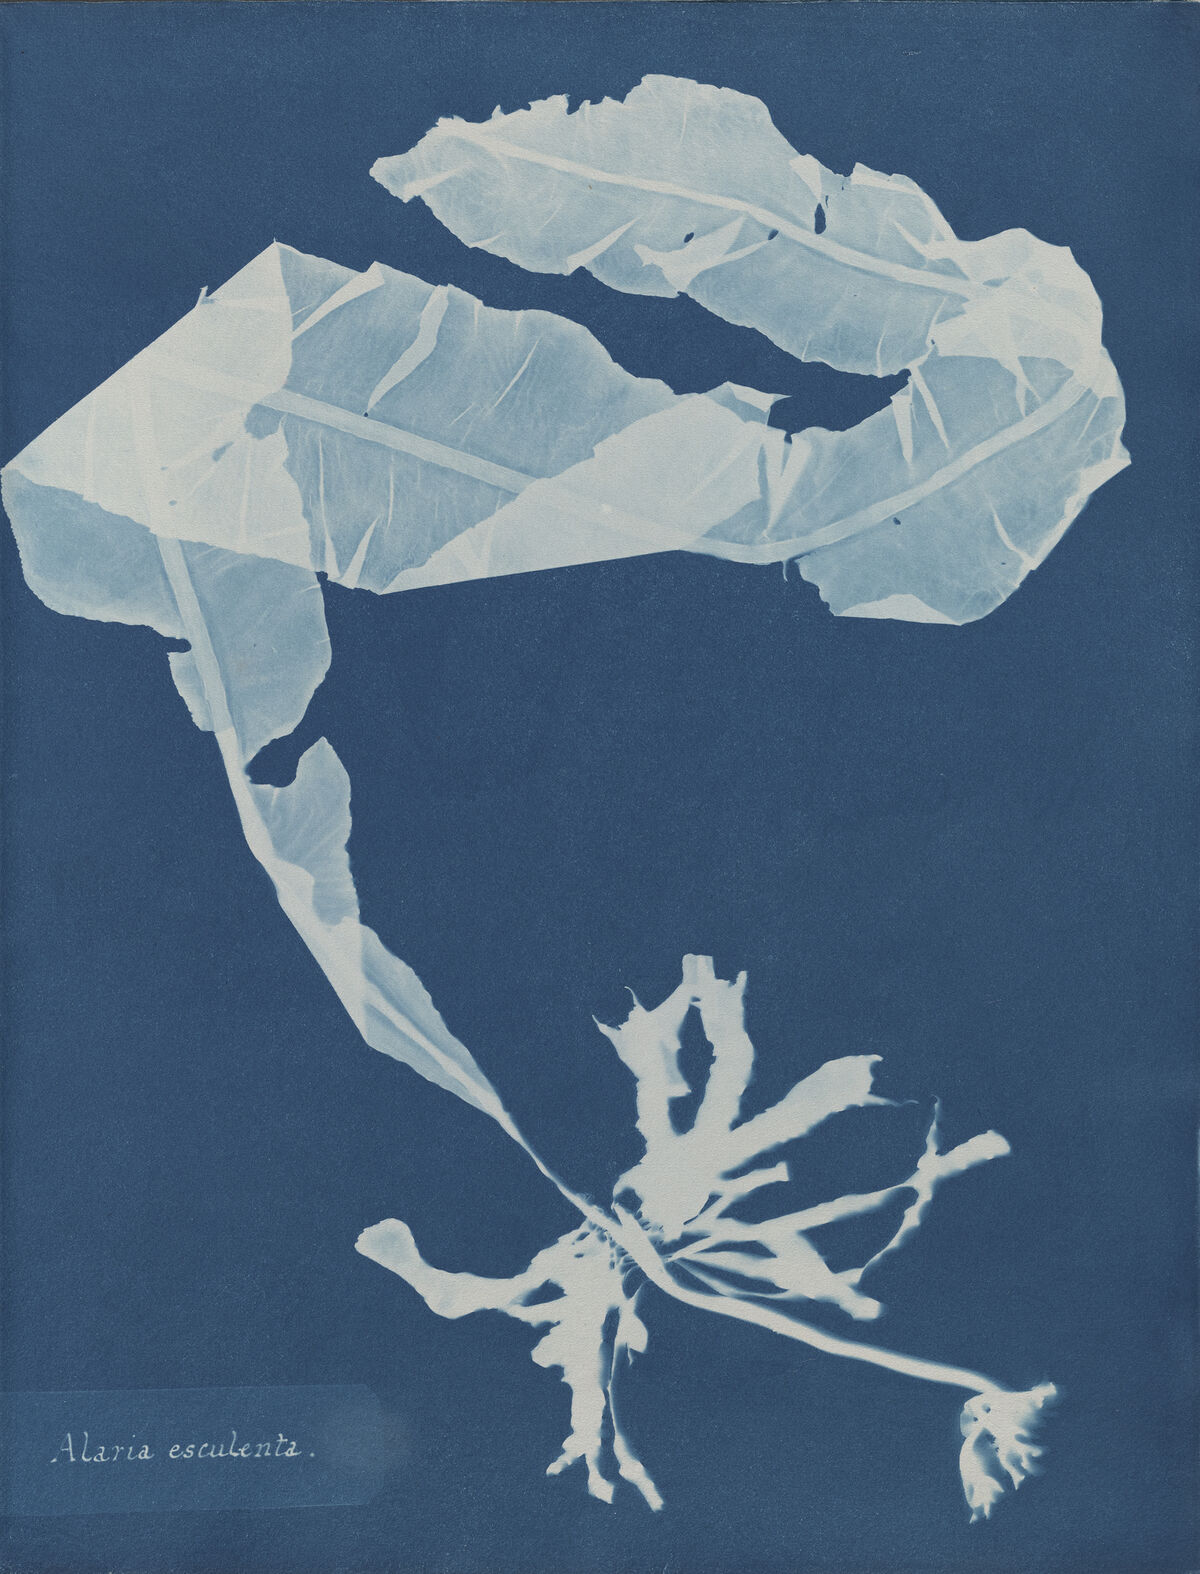 Anna Atkins, Alaria esculenta, from Part XII of Photographs of British Algae: Cyanotype Impressions, 1849-1850. Courtesy of The New York Public Library.